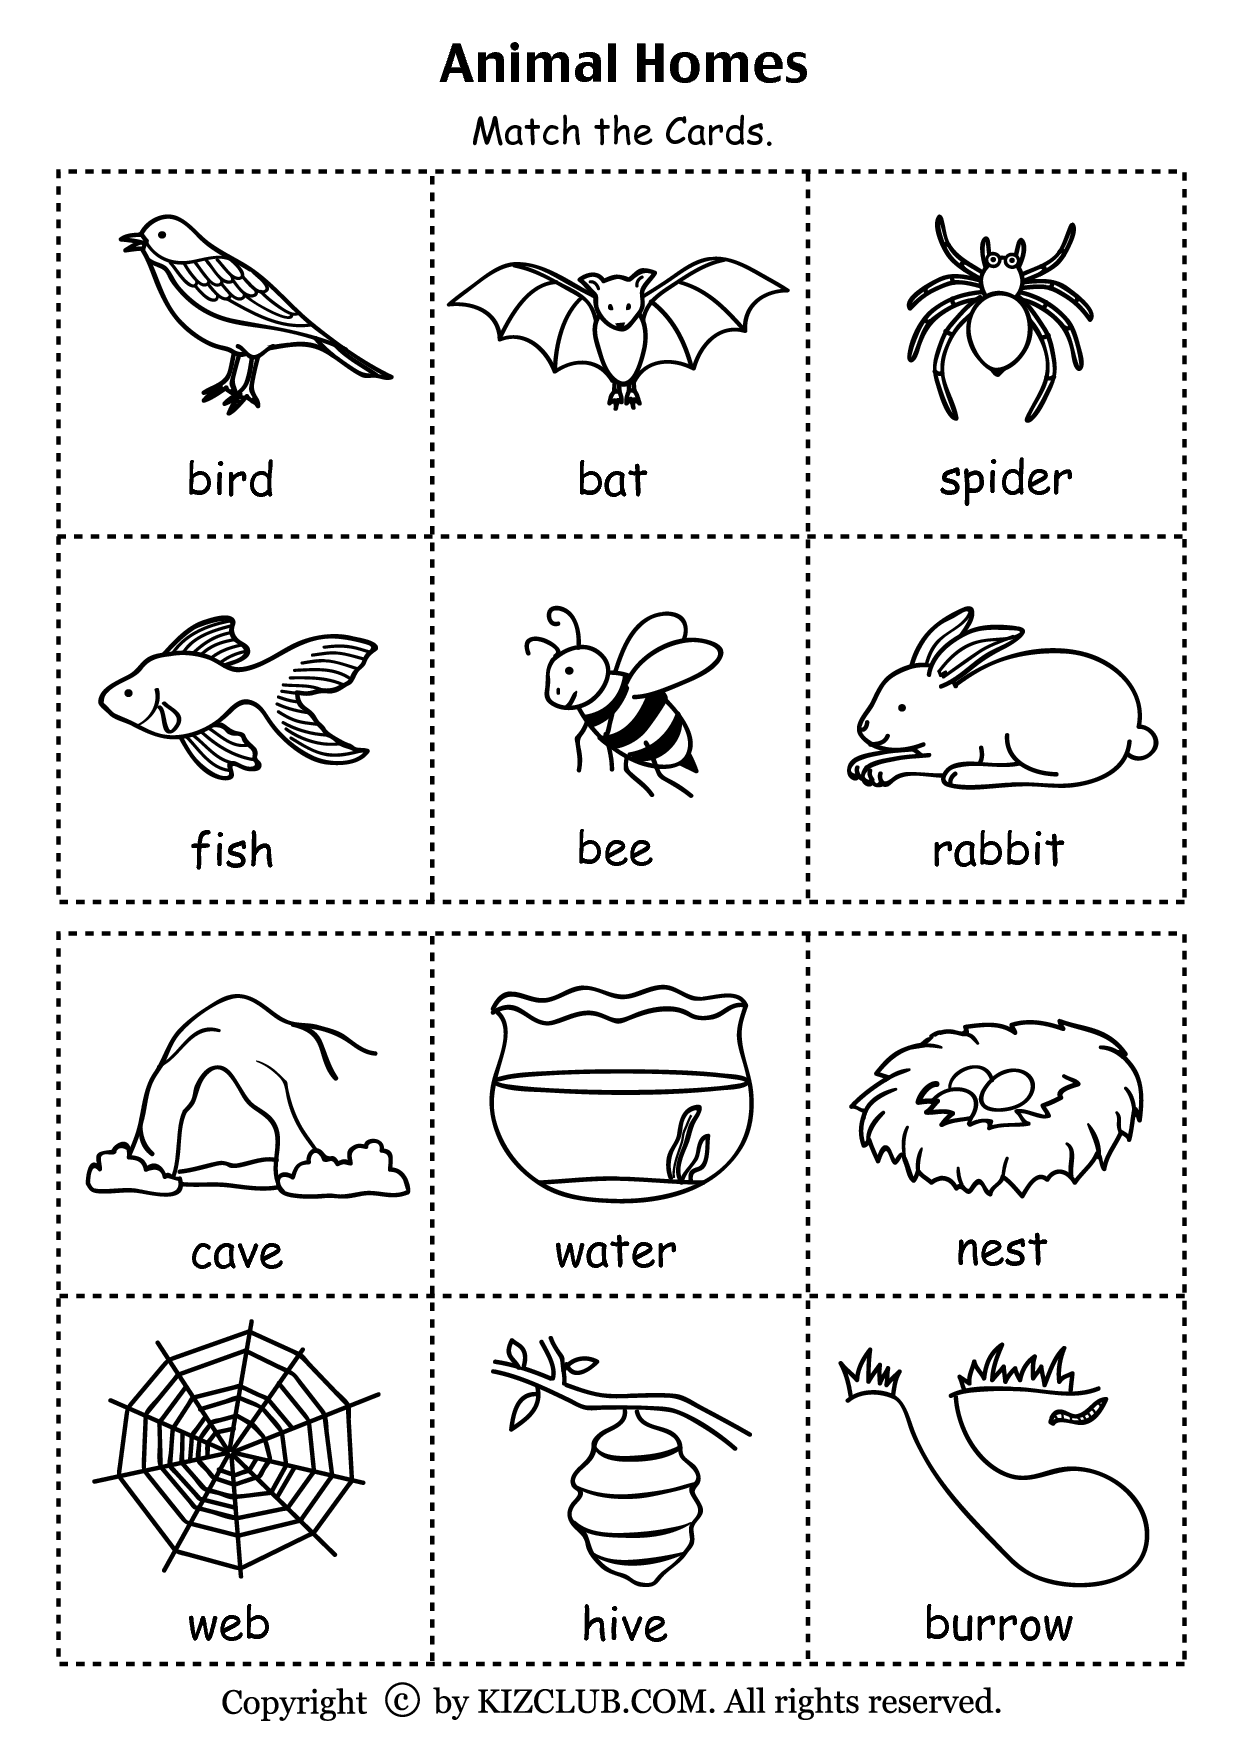 9 Best Images Of Food To Animal Match Worksheet